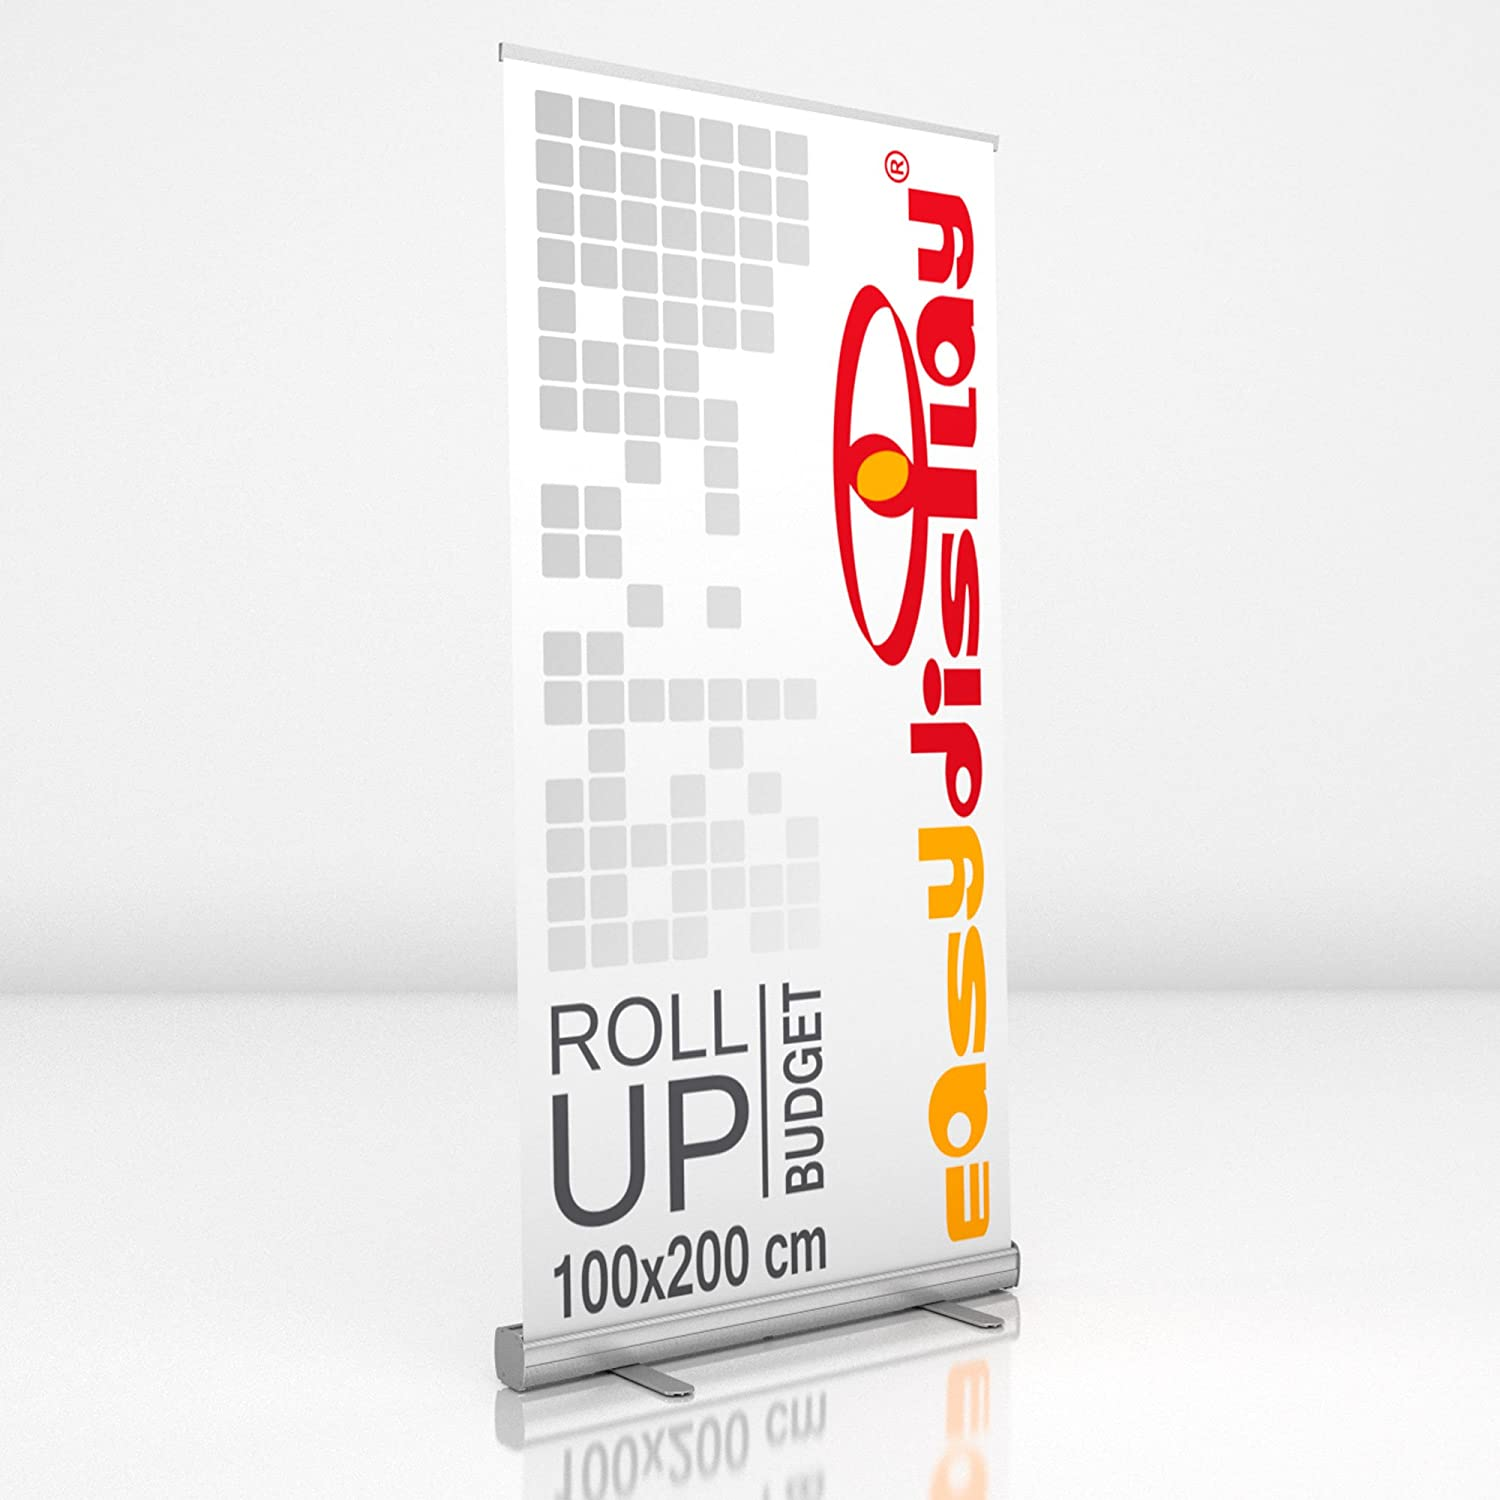 Roll Up Display 100 x 200 cm con stampa, Supporto pubblicitario Rollup Budget, Display Banner Easydisplay